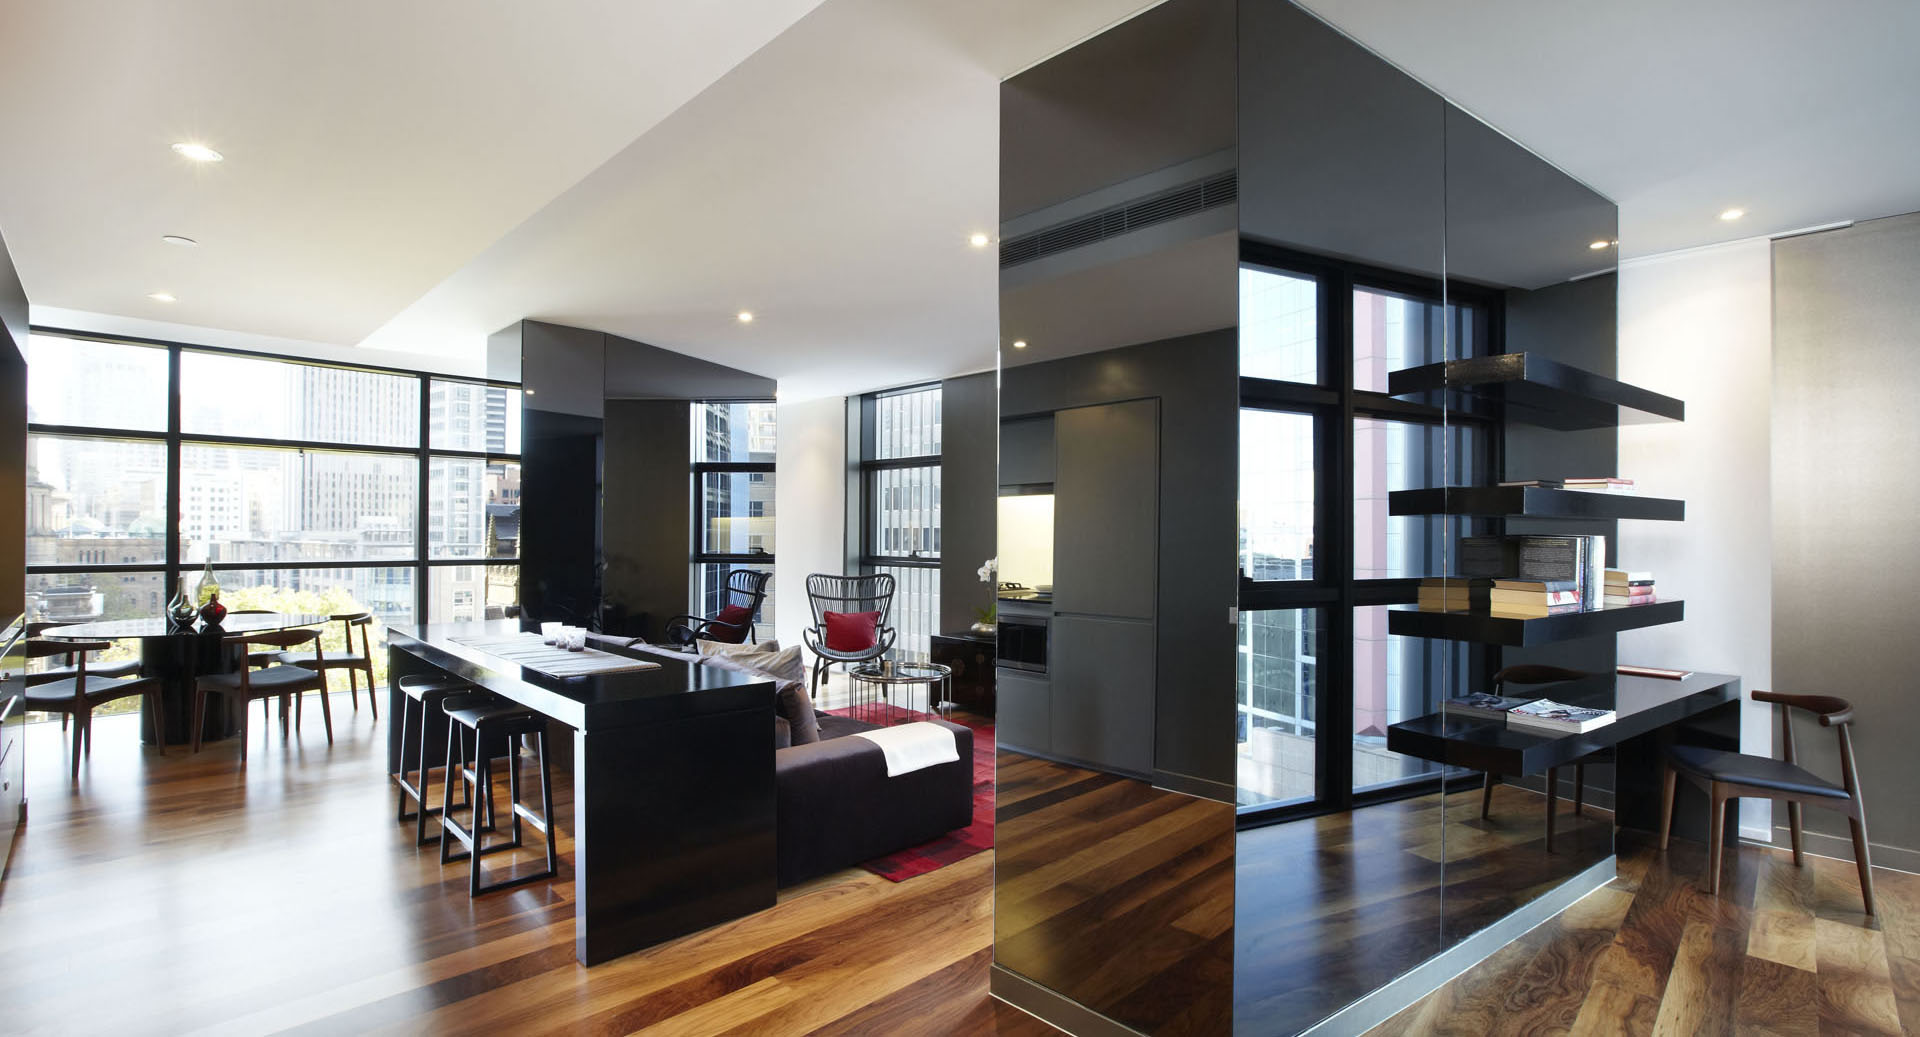 Apartment designs in sydney idesignarch interior design